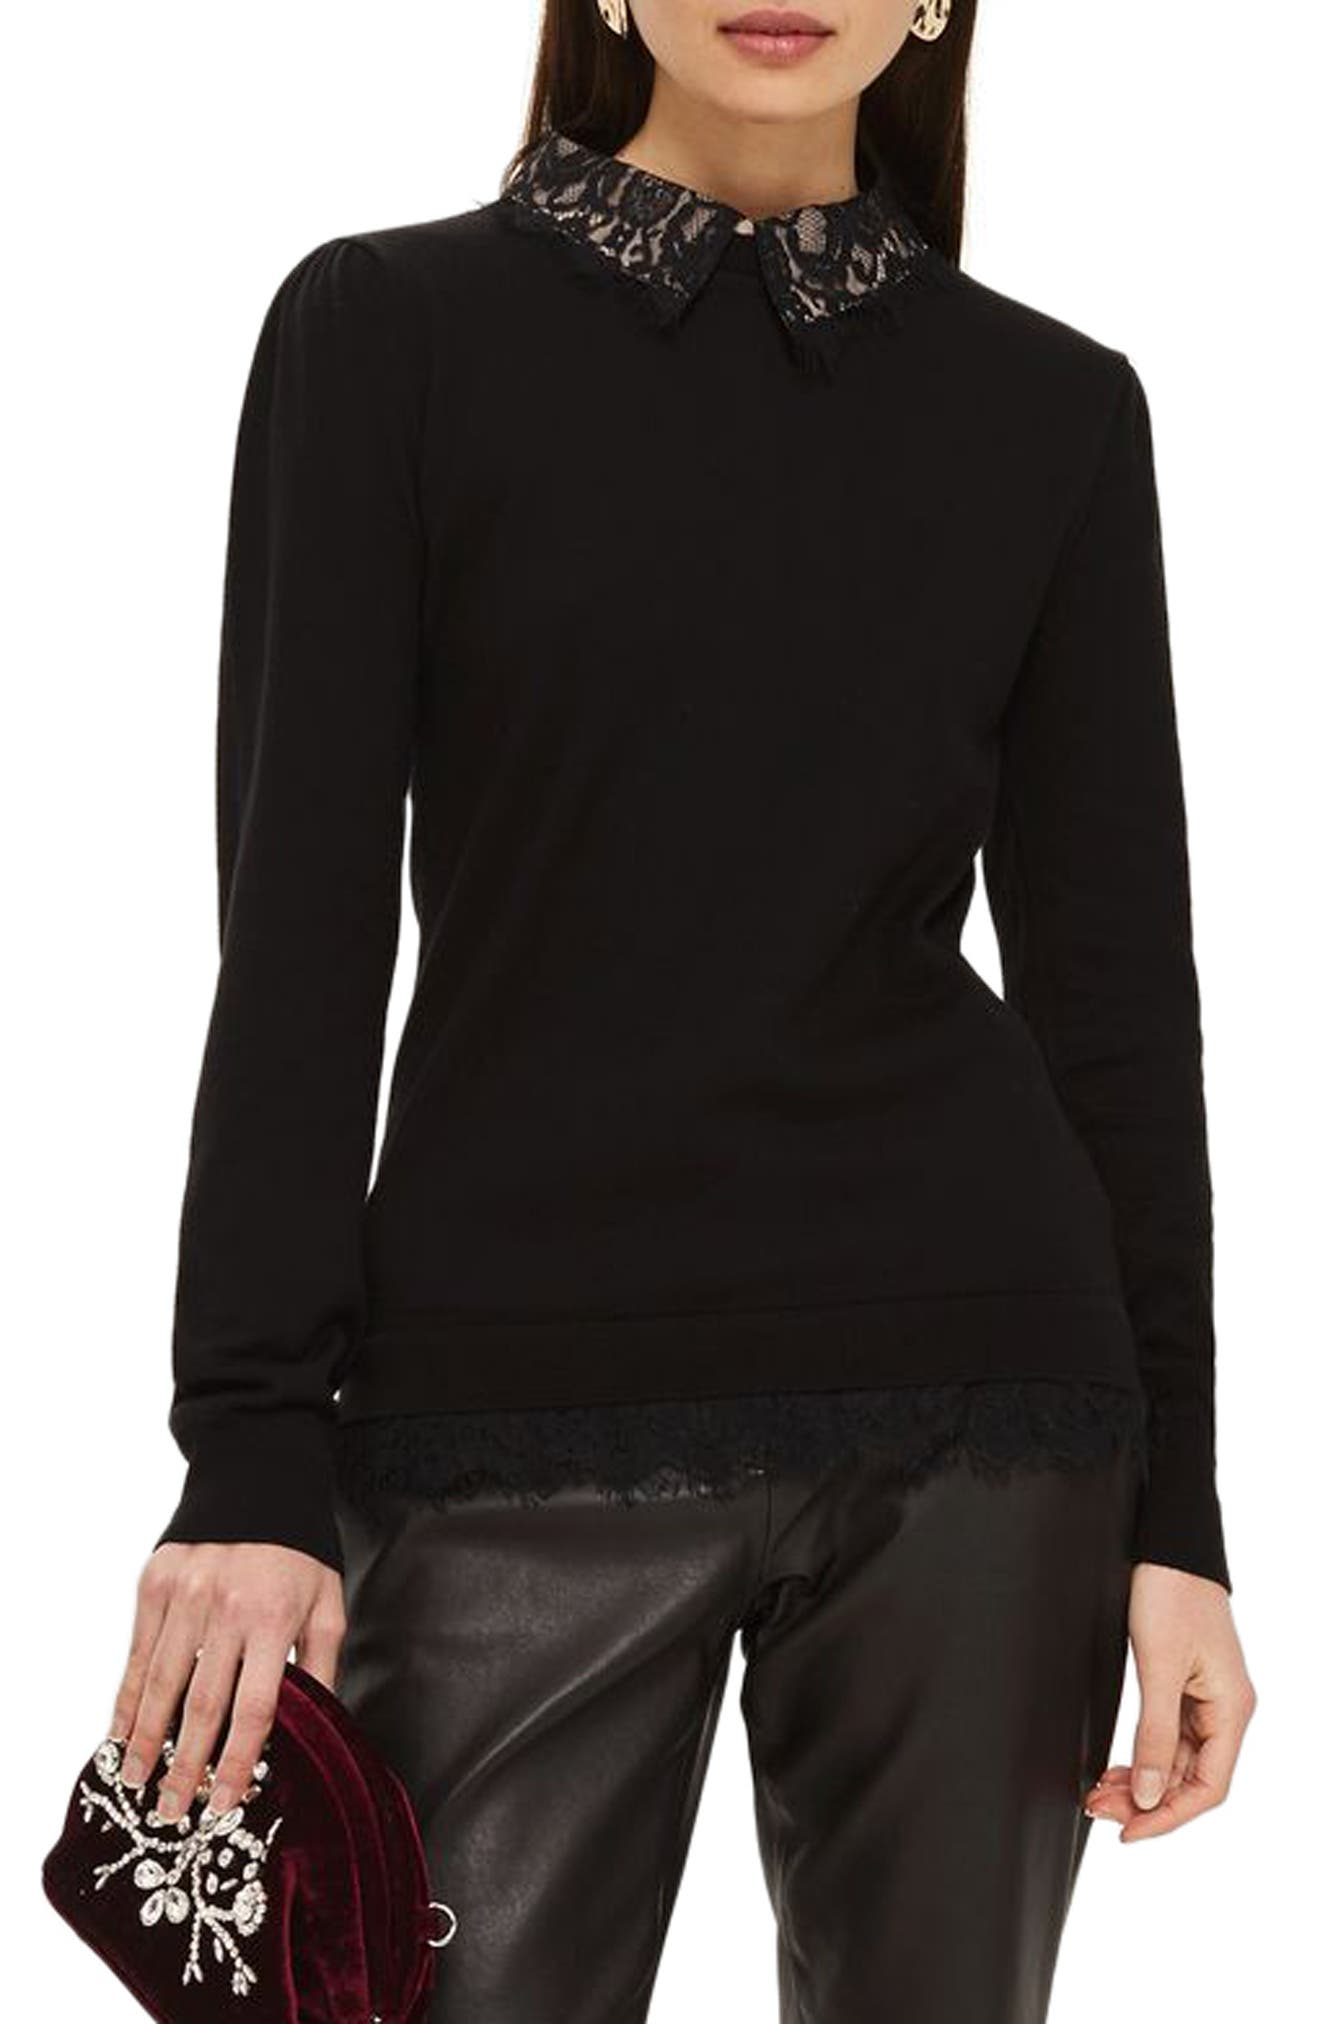 Topshop Lace Collar Hybrid Sweater